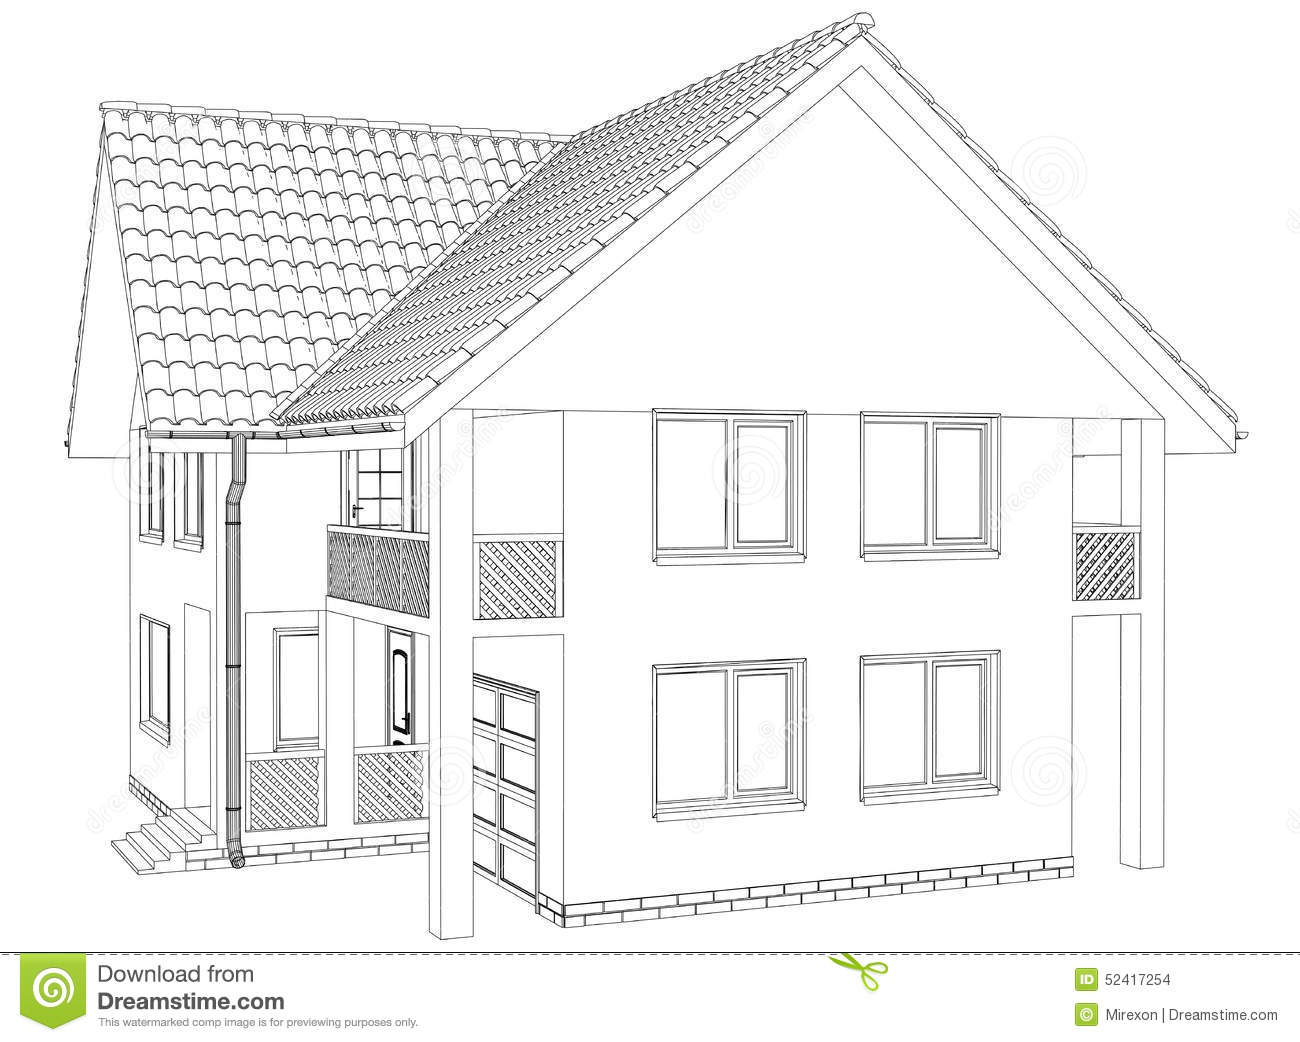 Home Addition Plans moreover Interior Photos Of Single Wide Mobile Homes besides Stock Illustration Interior Outline Drawing Sketch Perspective Space Image60658396 as well Royalty Free Stock Photos Sketch Design Interior Kitchen D Render Image36947528 additionally Royalty Free Stock Photo Simple House Sketch Image12911715. on project 9 house blueprint